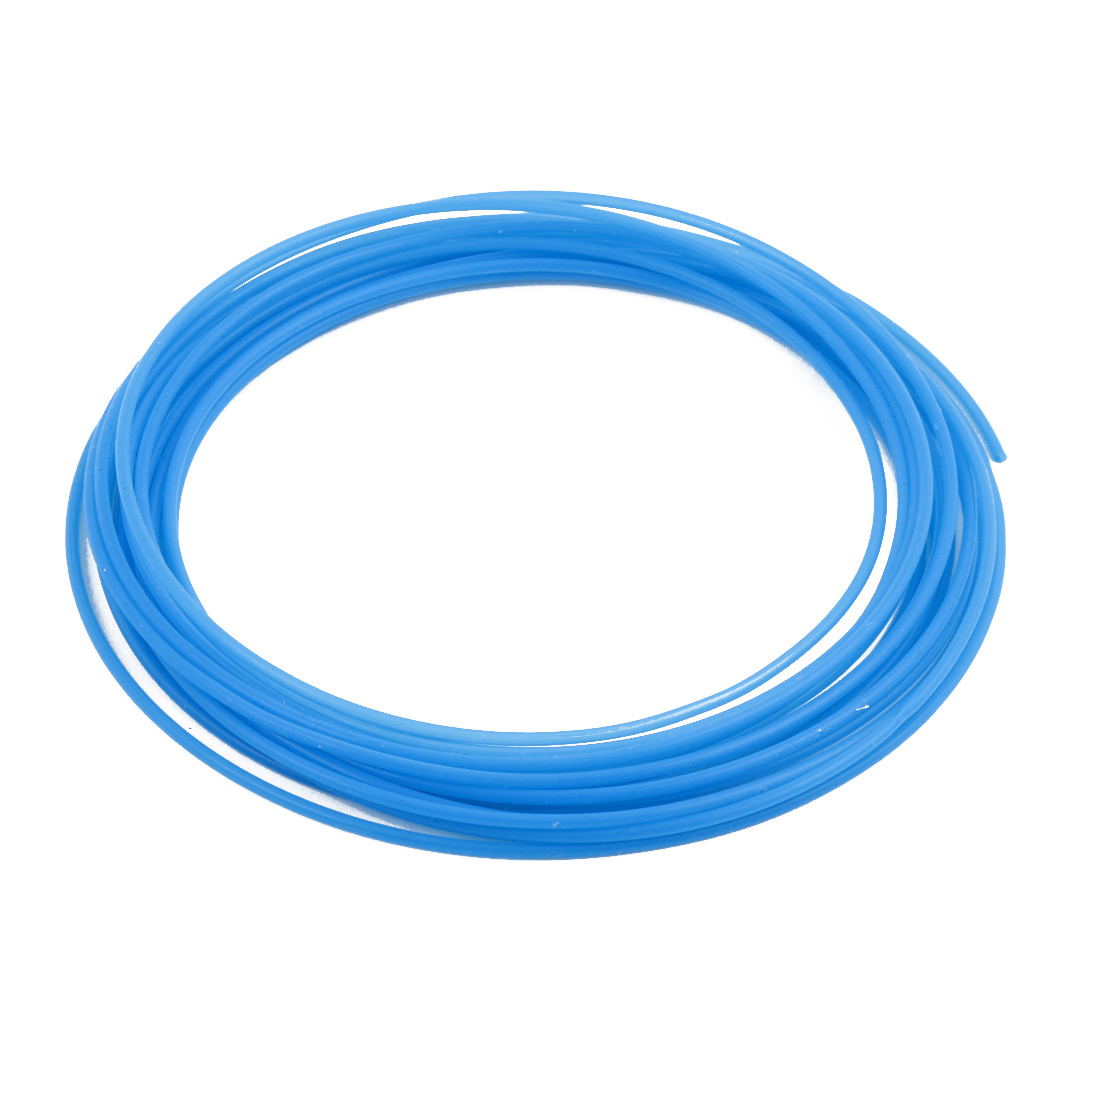 1.5mmx1.8mm PTFE Resistant High Temperature Blue Tubing 5 Meters 16.4Ft